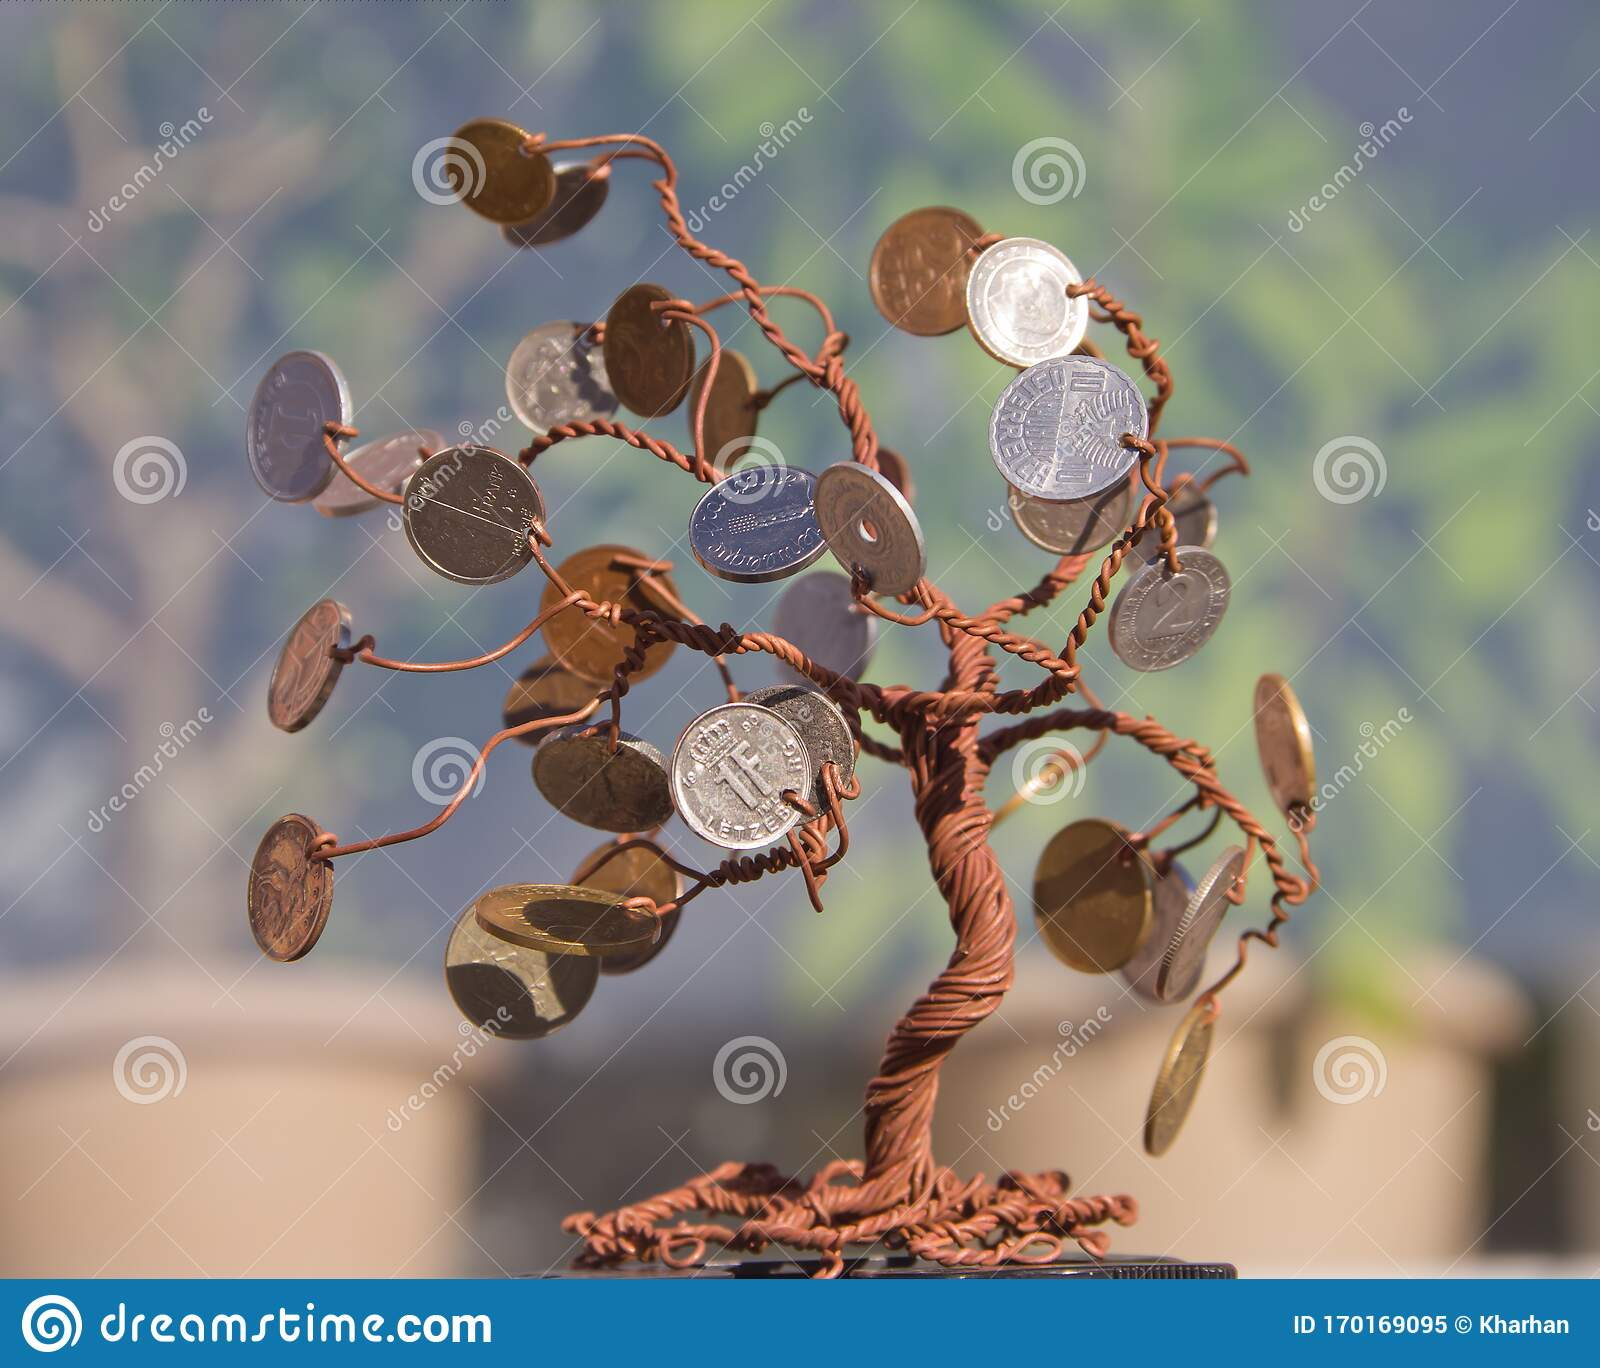 1 030 Copper Crafts Photos Free Royalty Free Stock Photos From Dreamstime